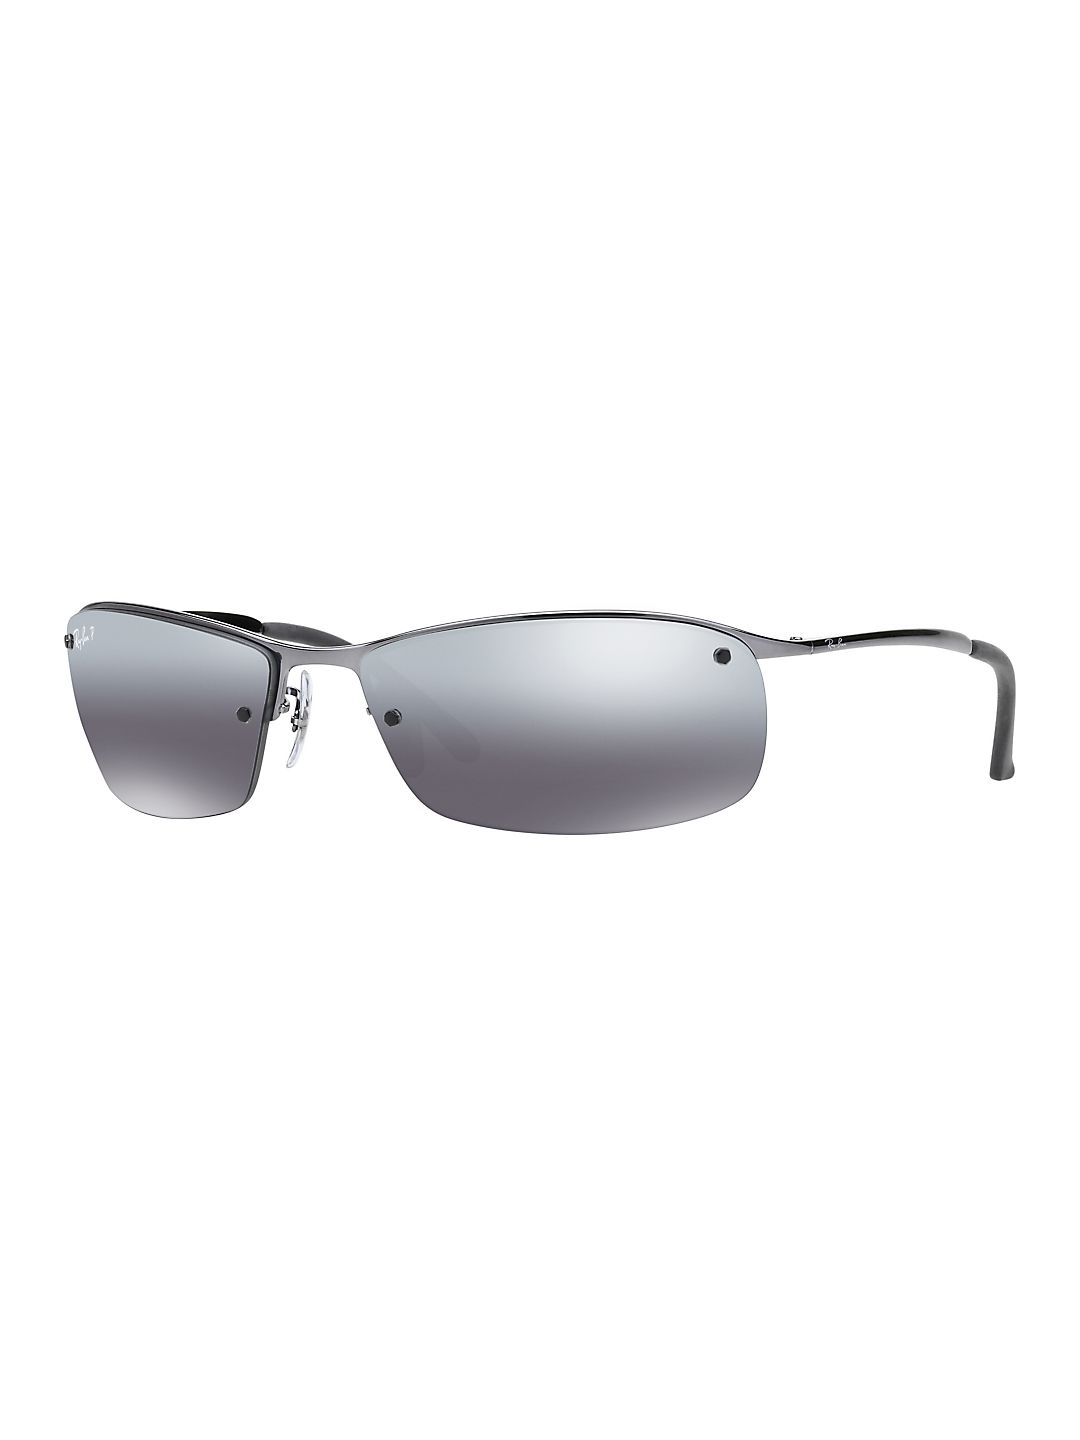 Ray-Ban Men's RB3183 Rectangle Metal Sunglasses, 63mm